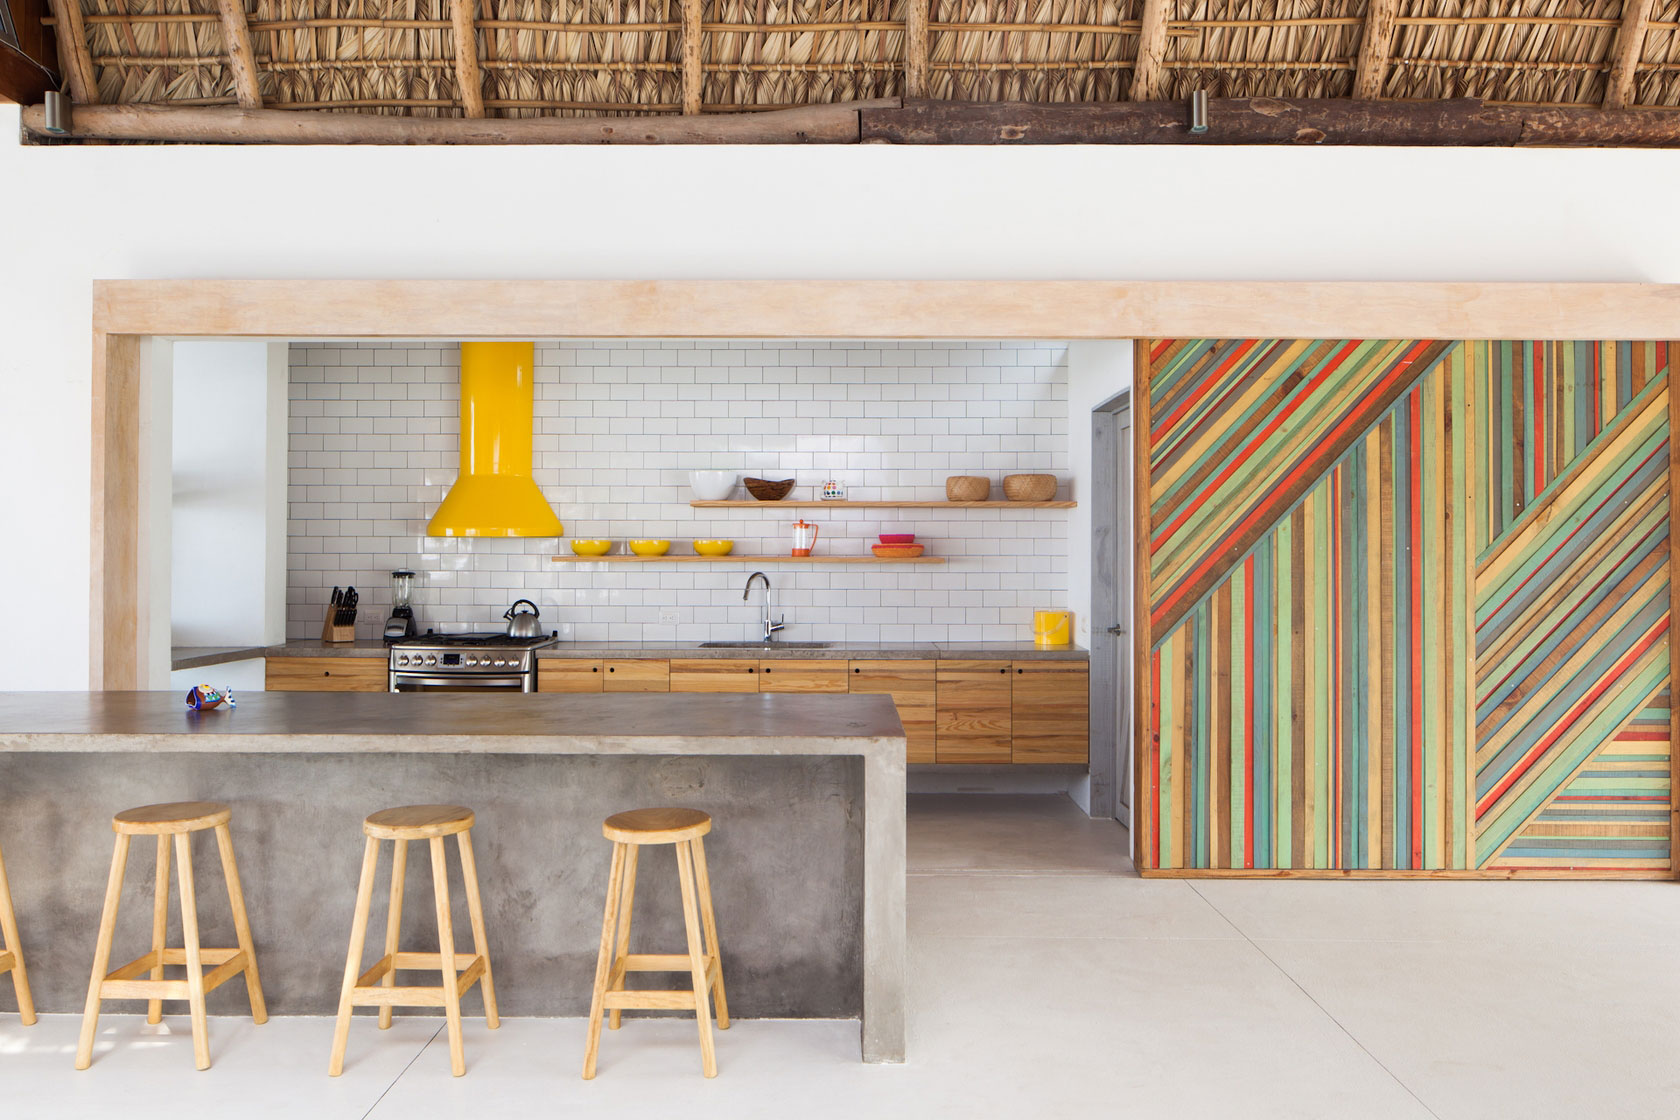 Kitchen, Breakfast Bar, Colorful Wall, Beach House in San Salvador, El Salvador